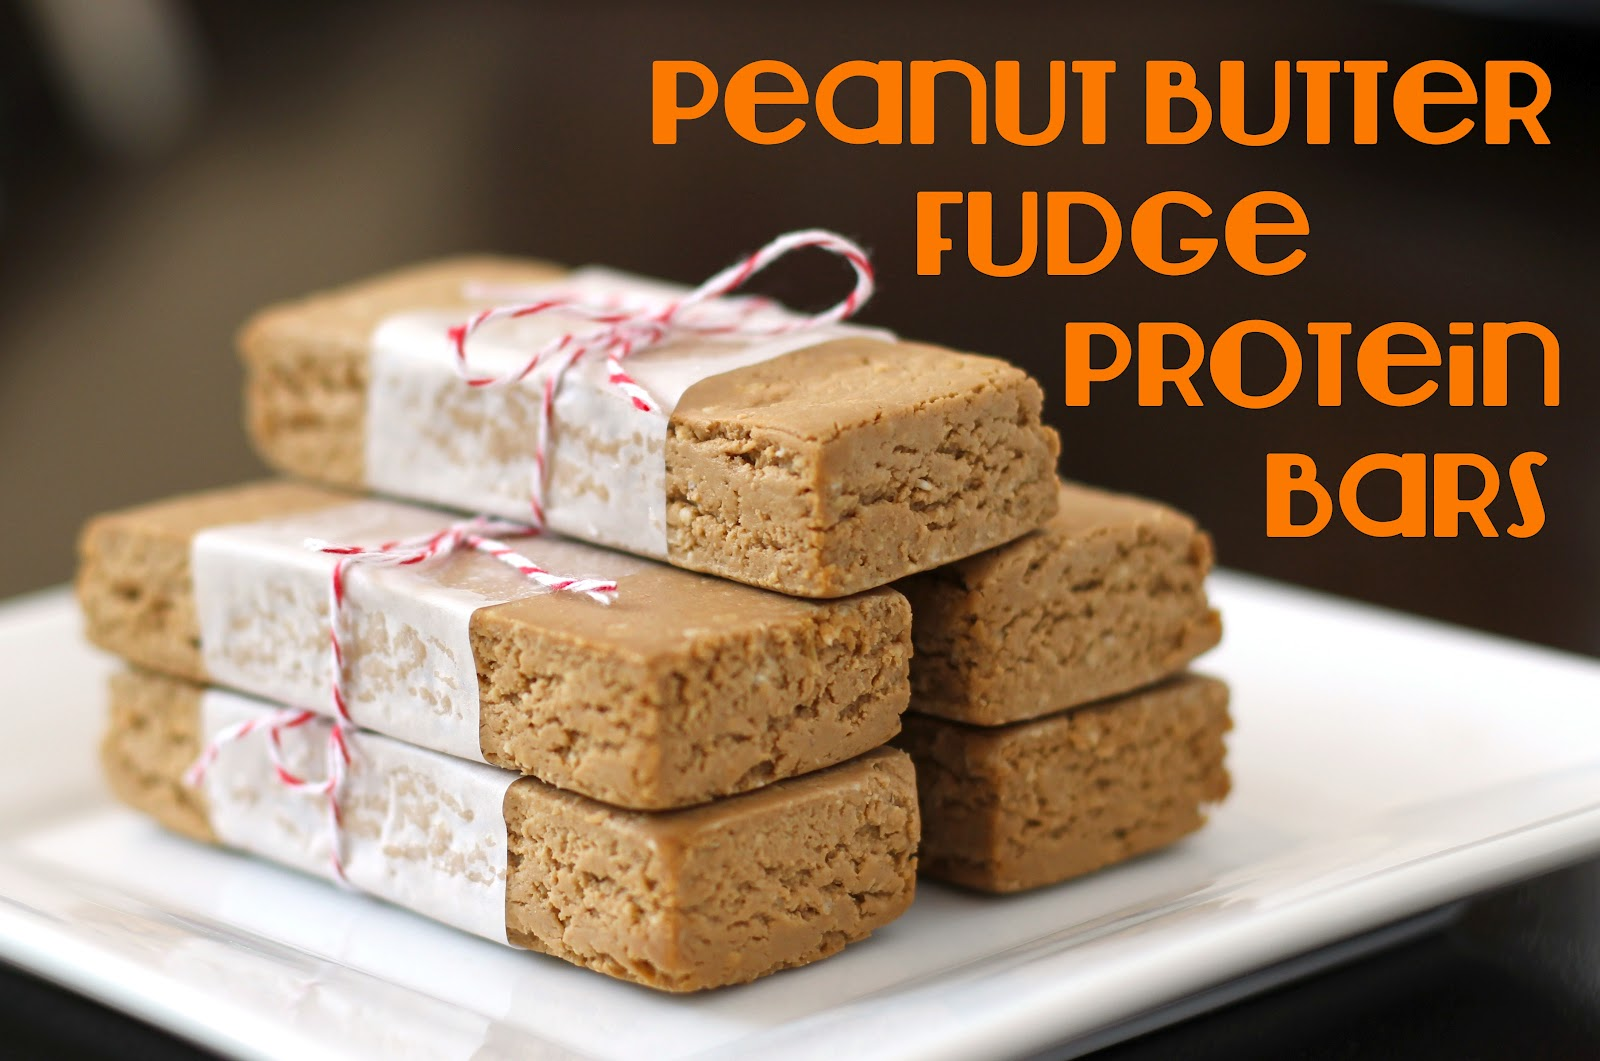 Healthy Homemade Peanut Butter Fudge Protein Bars